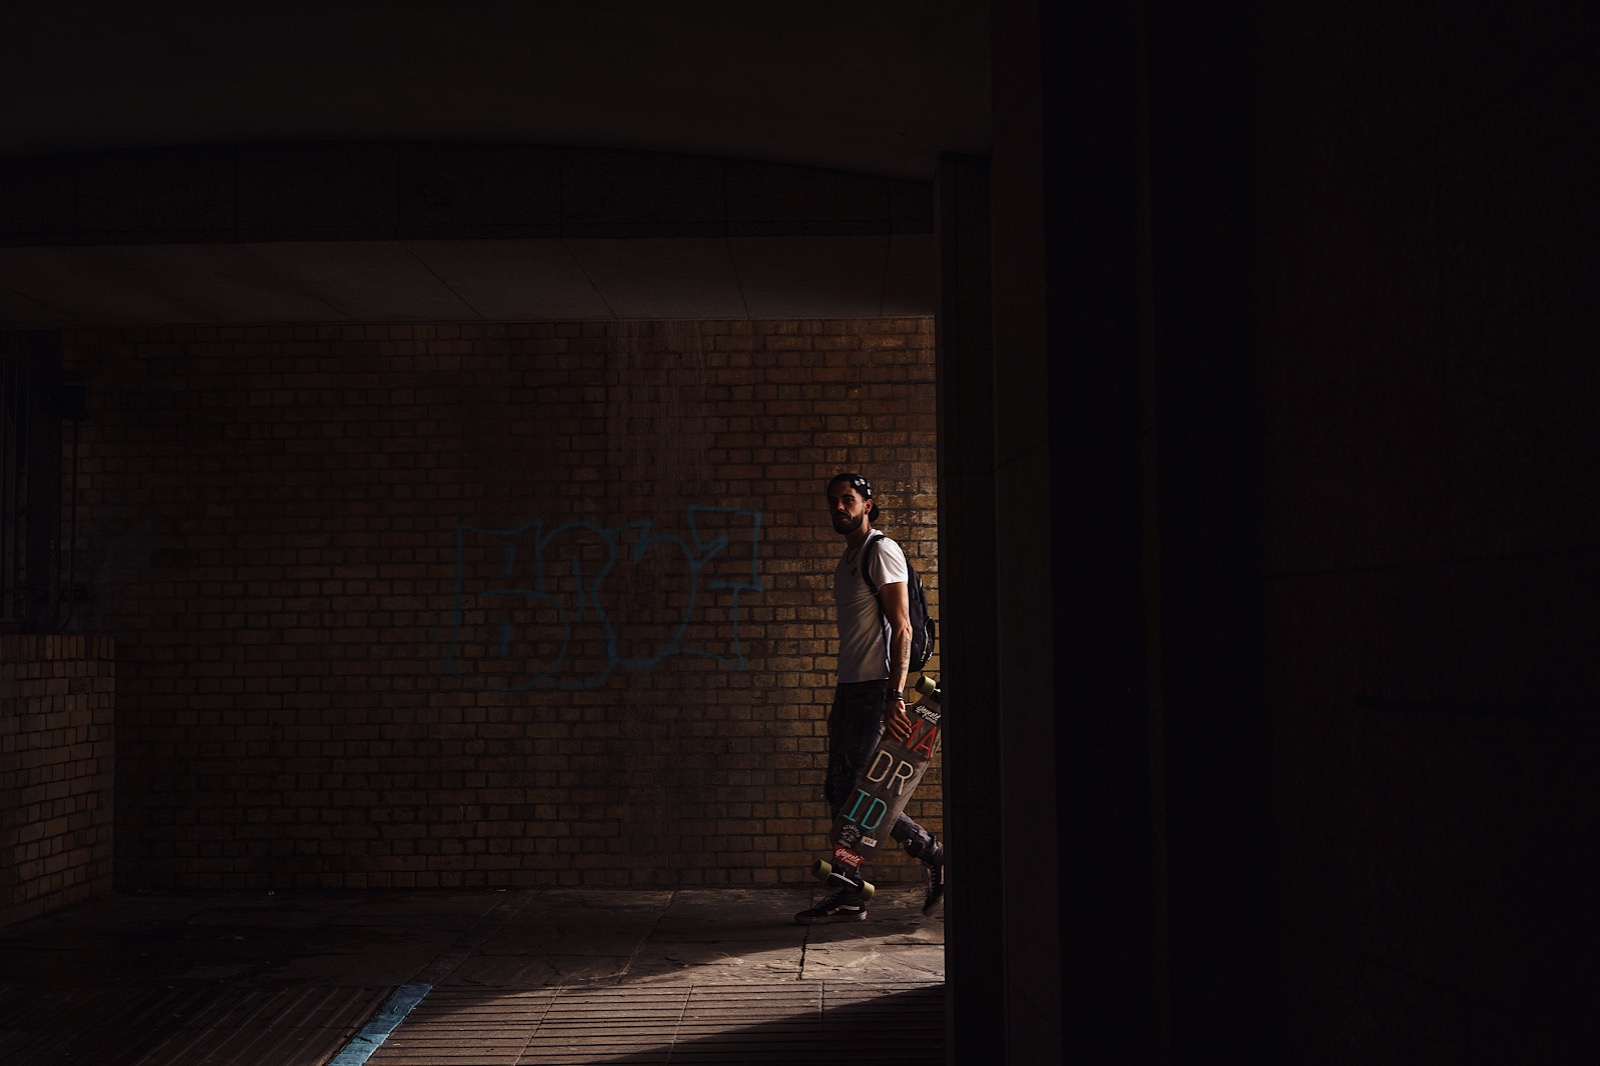 Man walking with skateboard in his hand